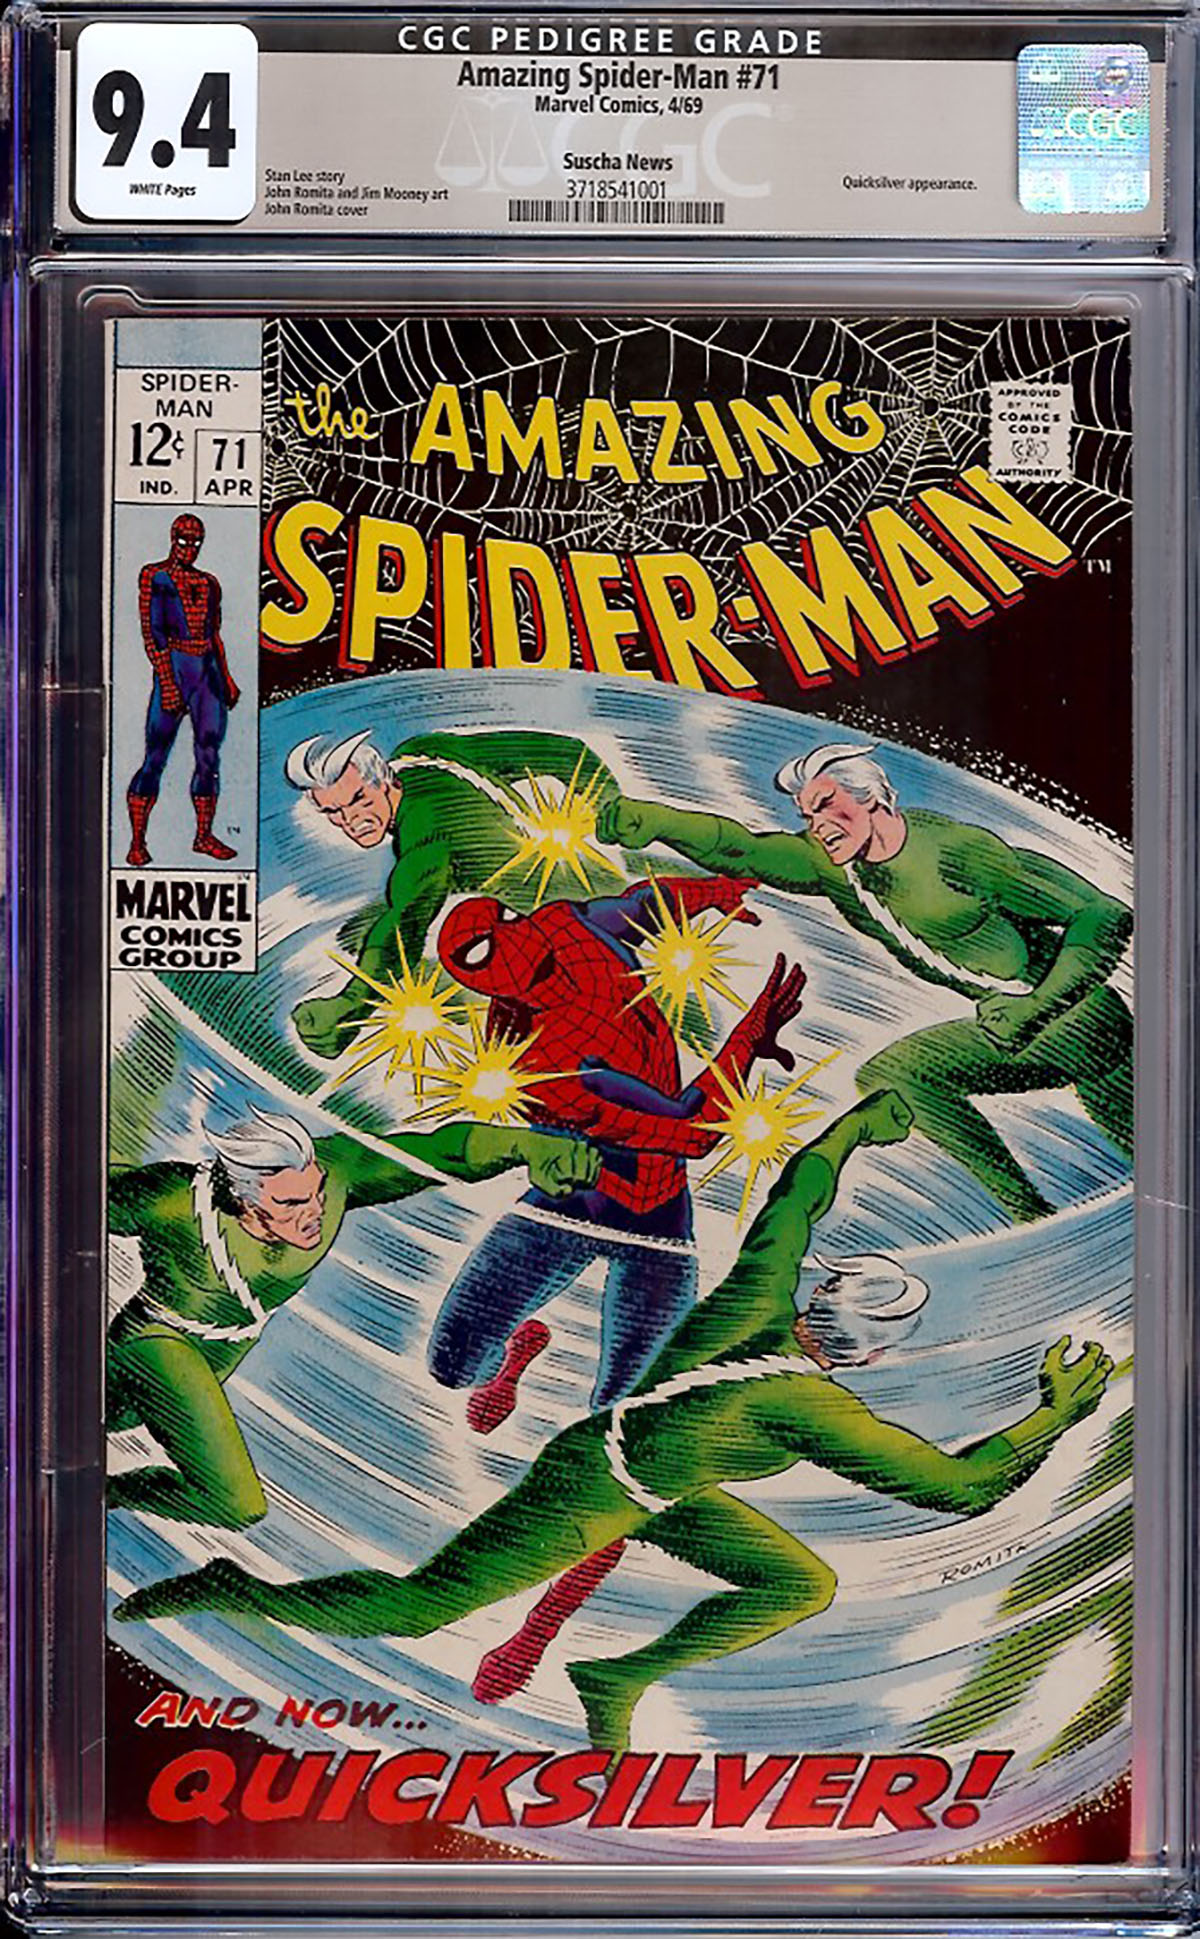 Amazing Spider-Man #71 CGC 9.4 w Suscha News